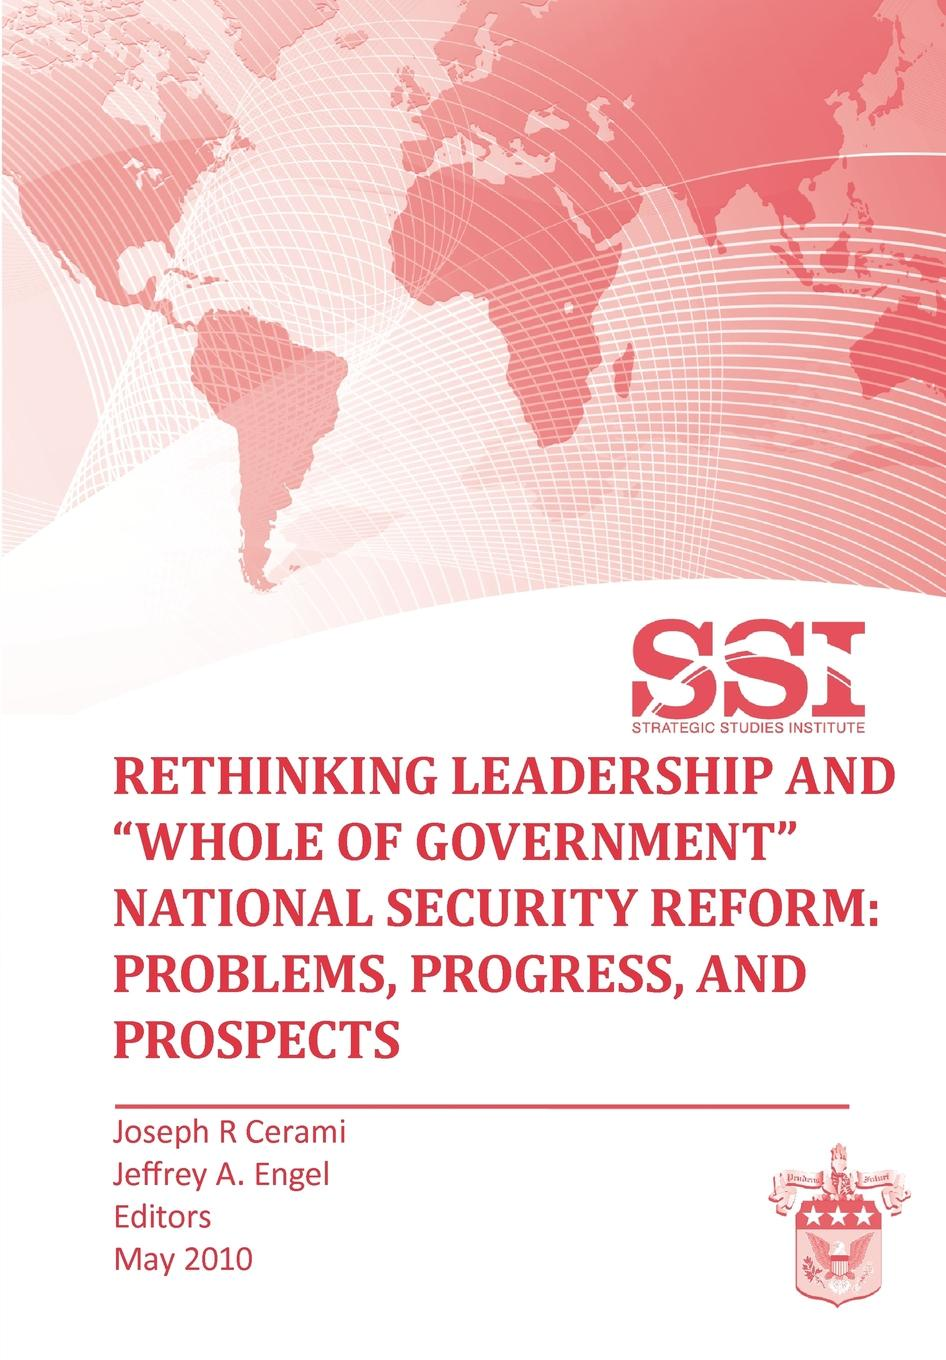 Strategic Studies Institute Rethinking Leadership and Whole of Government National Security Reform. Problems, Progress, and Prospect daniel evans international affairs and intelligence studies primer